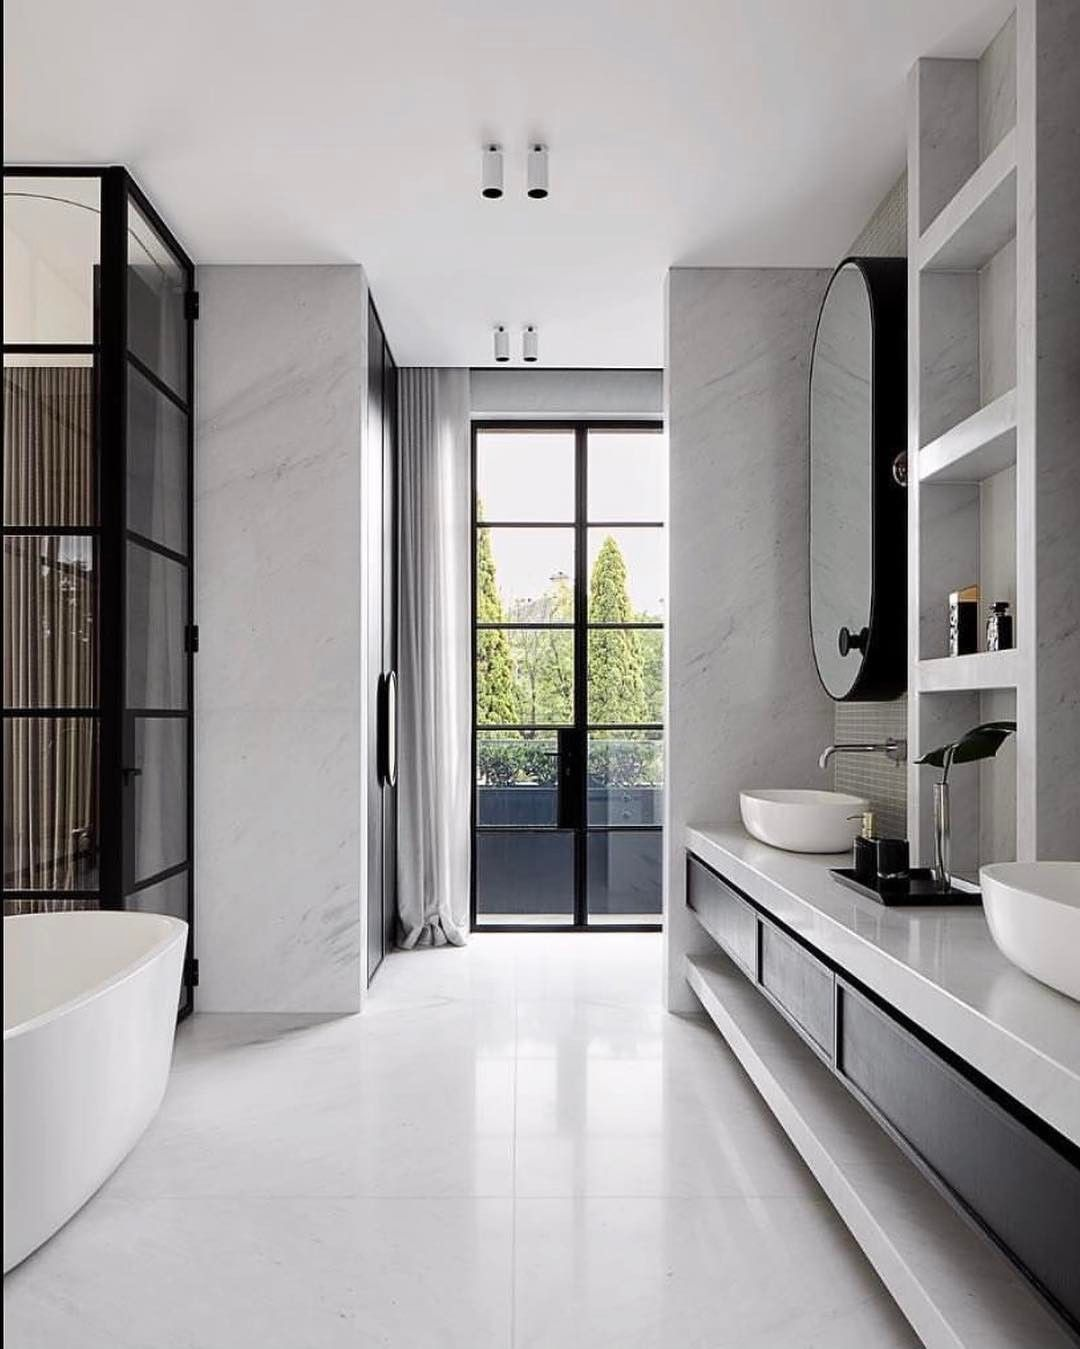 L O V E So Many Things About This Bathroom That I M Loving And